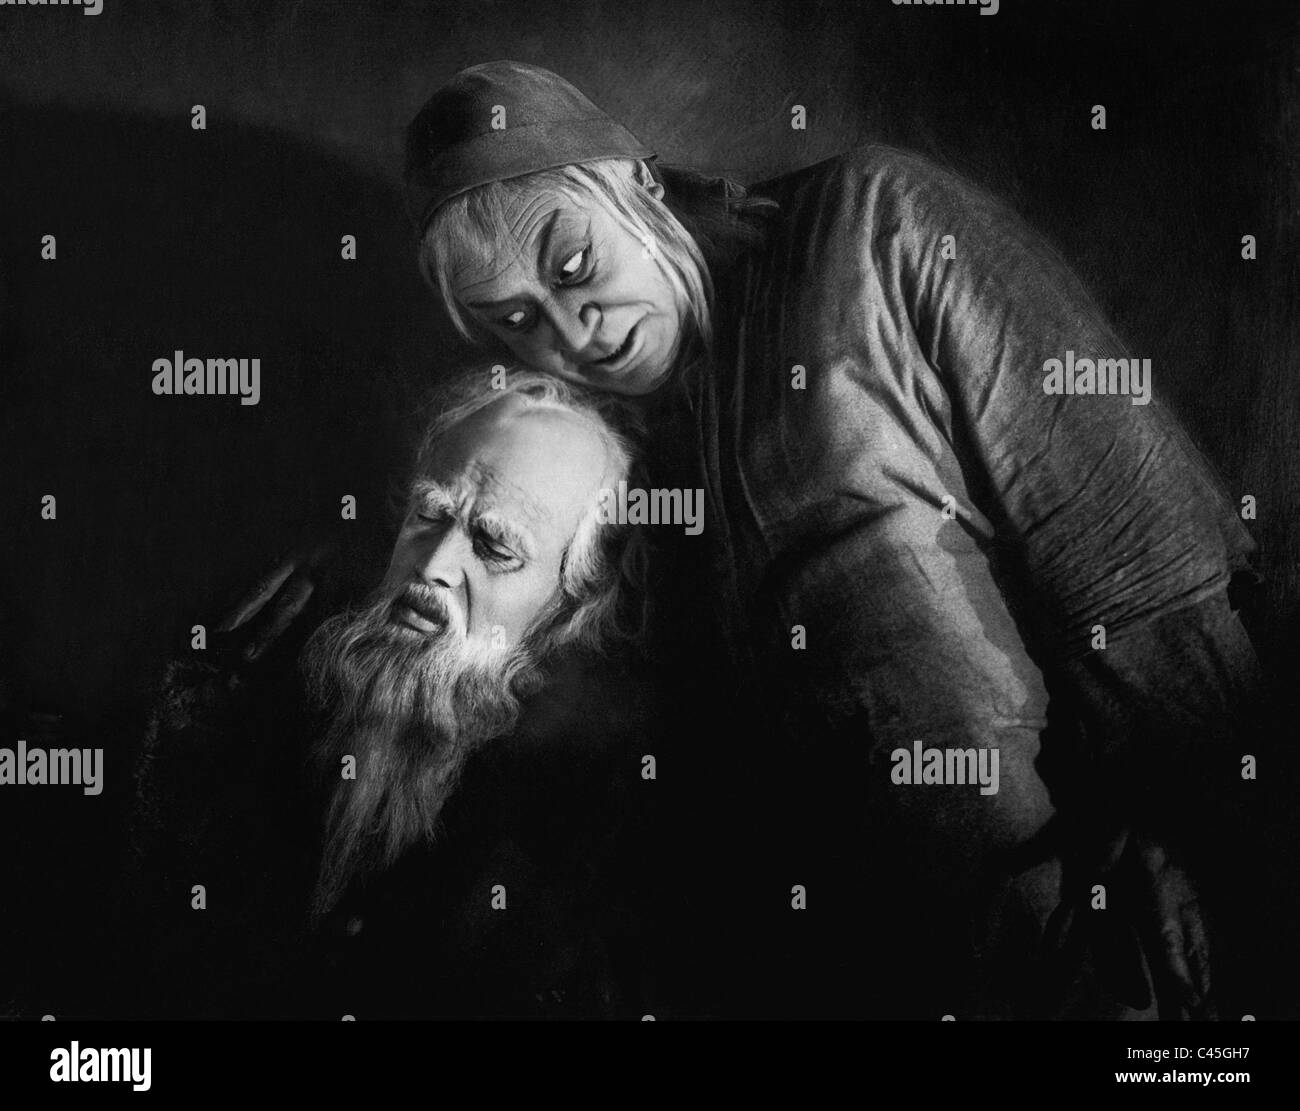 Goesta Ekman and Emil Jannings in the movie 'Faust', 1926 - Stock Image